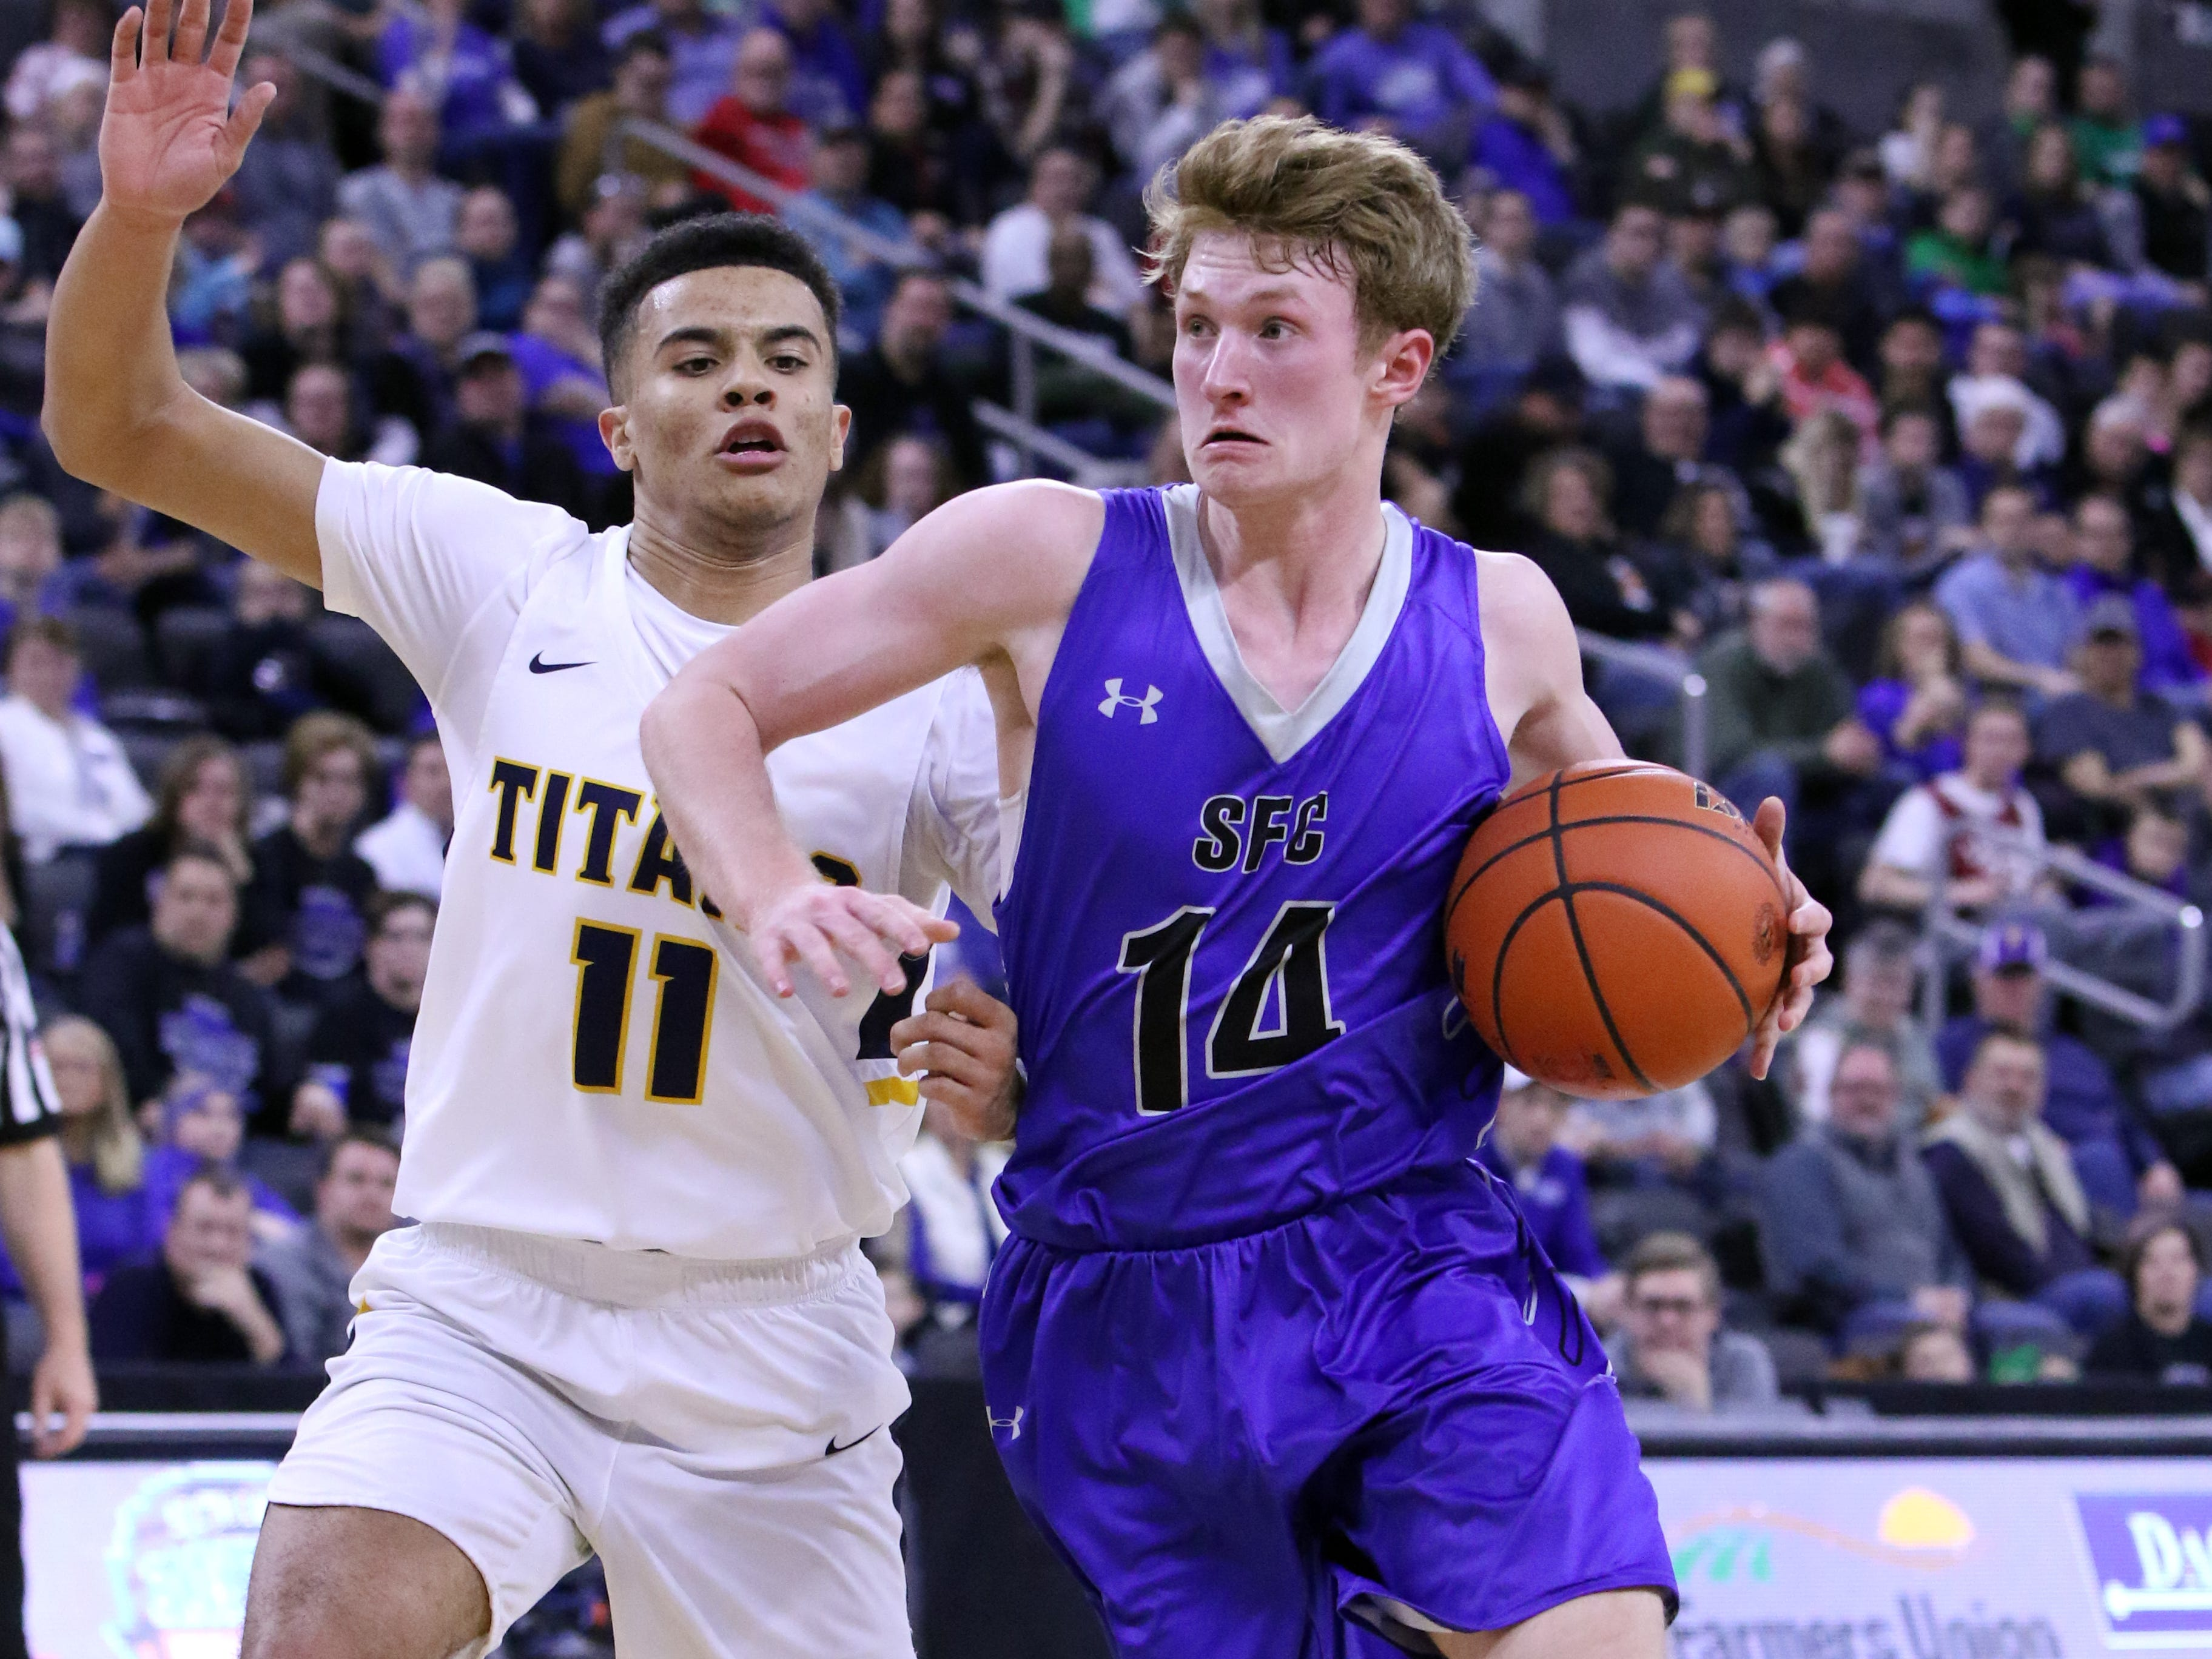 Gavin Schipper of Sioux Falls Christian drives past Justin Hohn of Tea Area during Saturday's Class A title game at the Premier Center.